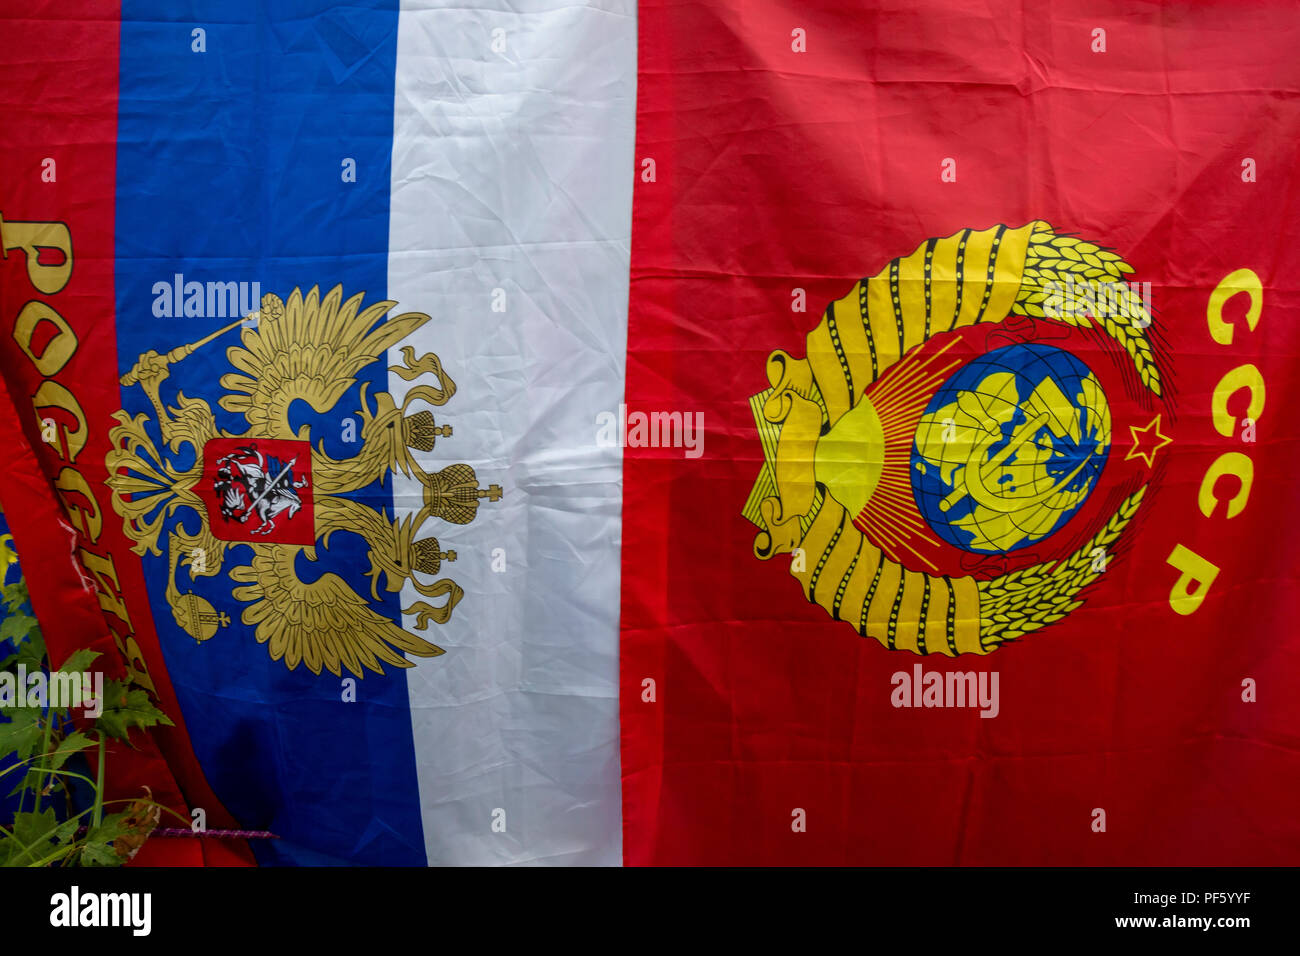 Flags of the Russian Federation and the USSR hang on a street in Russian town - Stock Image